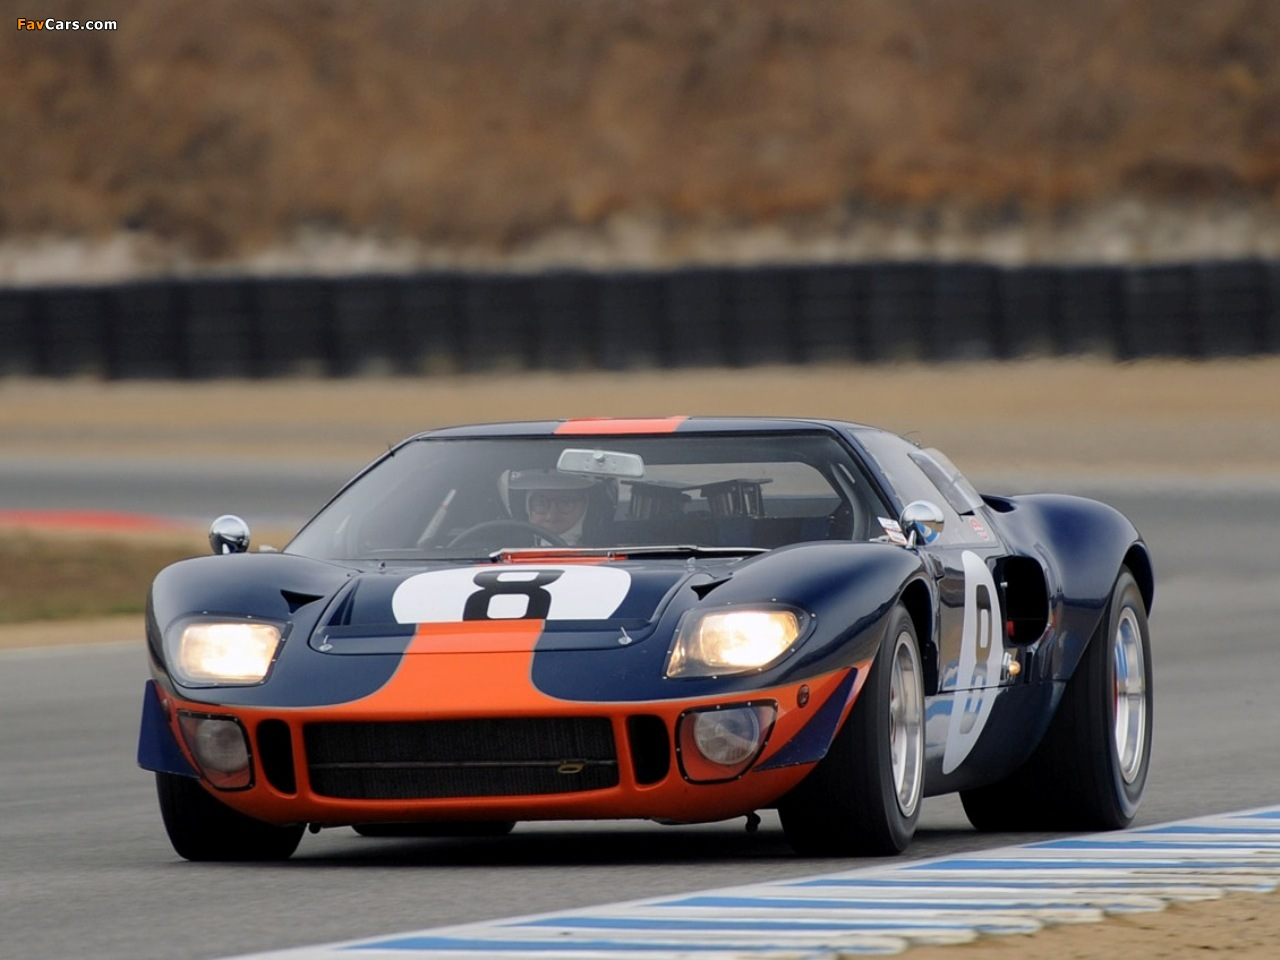 ford gt40 mki 1966 images 1280x960